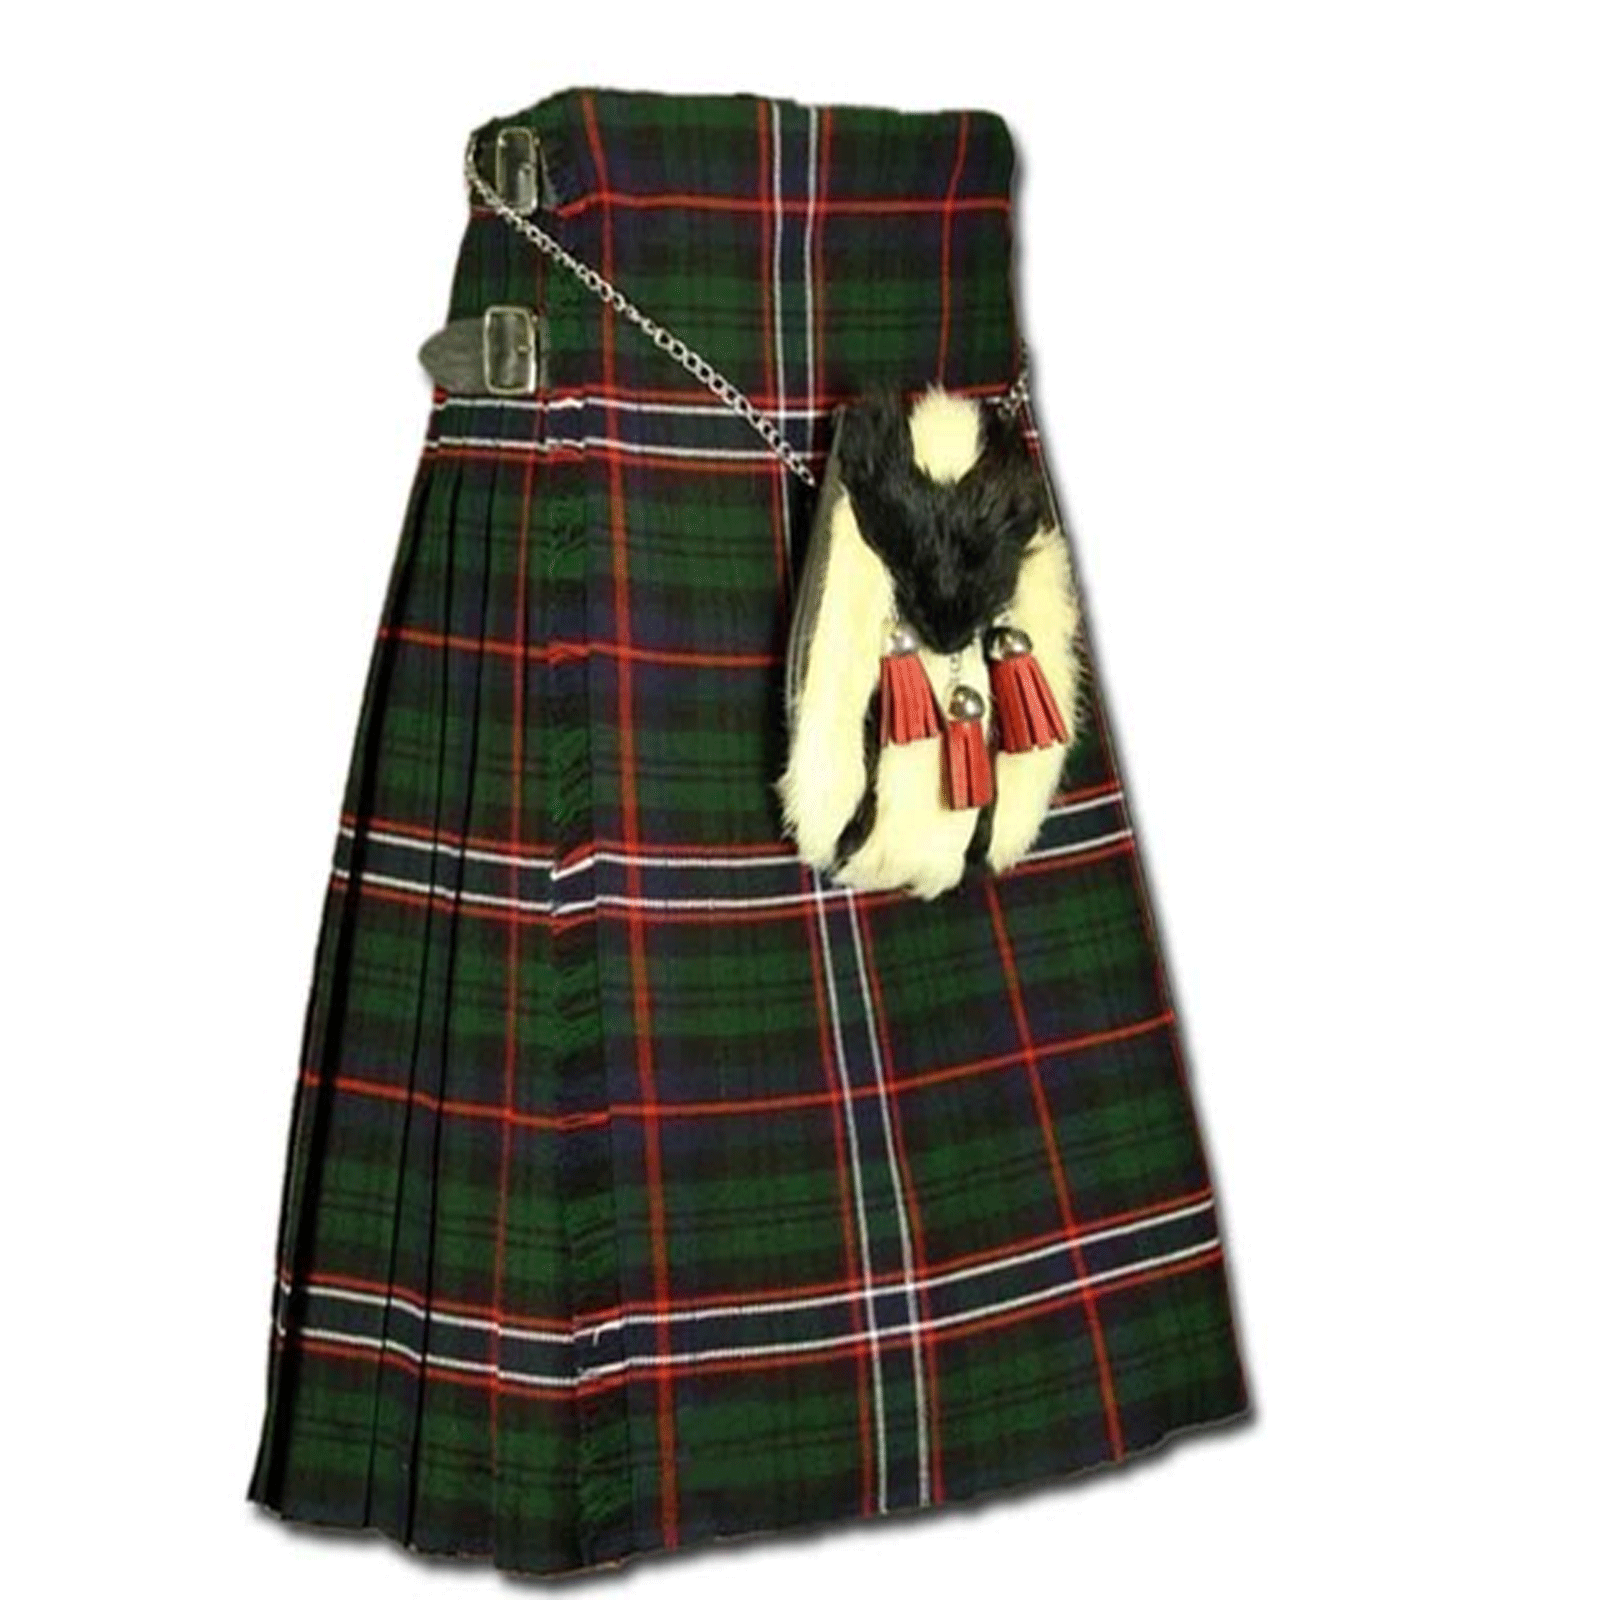 Scottish National Tartan Kilt